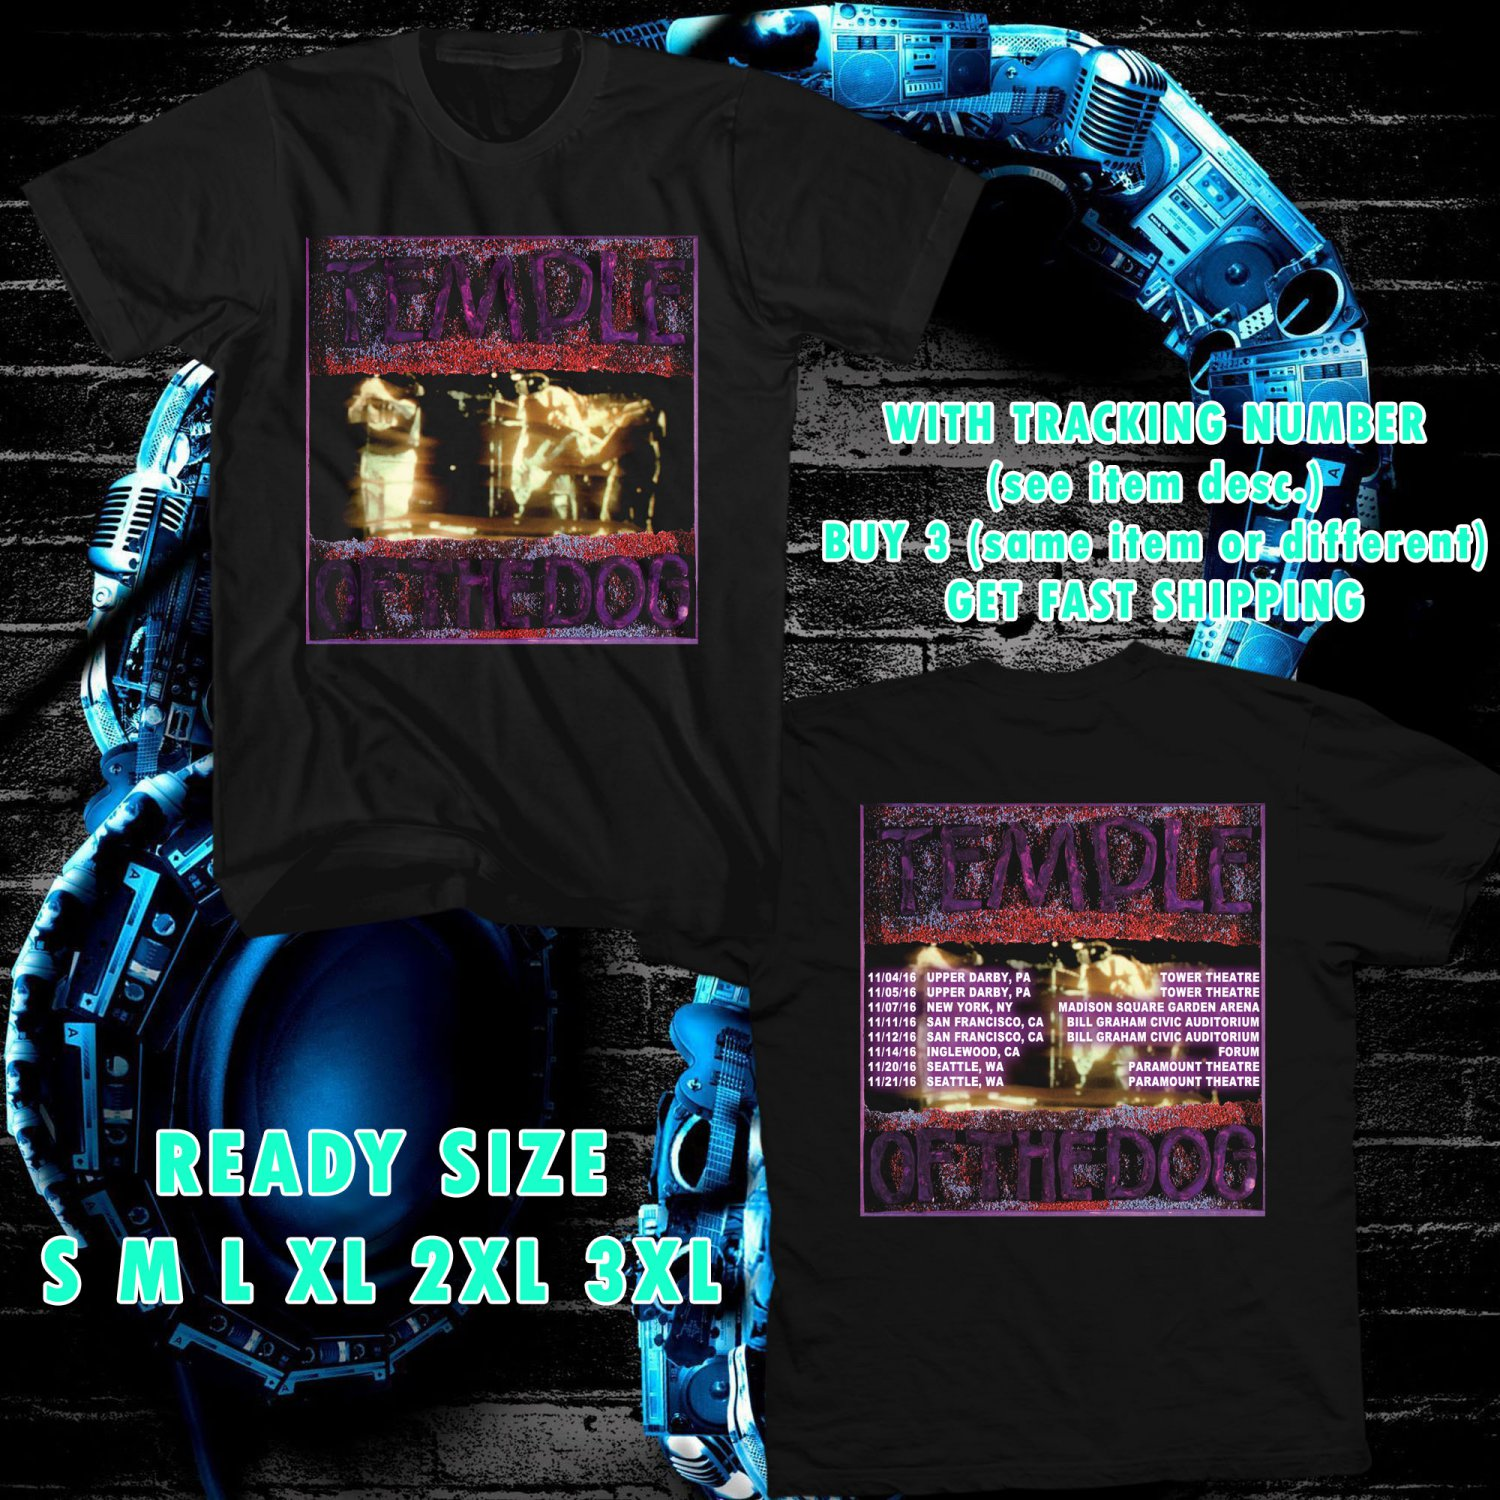 wow temple of the dog tour 2016 black tee s 3xl astr 443. Black Bedroom Furniture Sets. Home Design Ideas